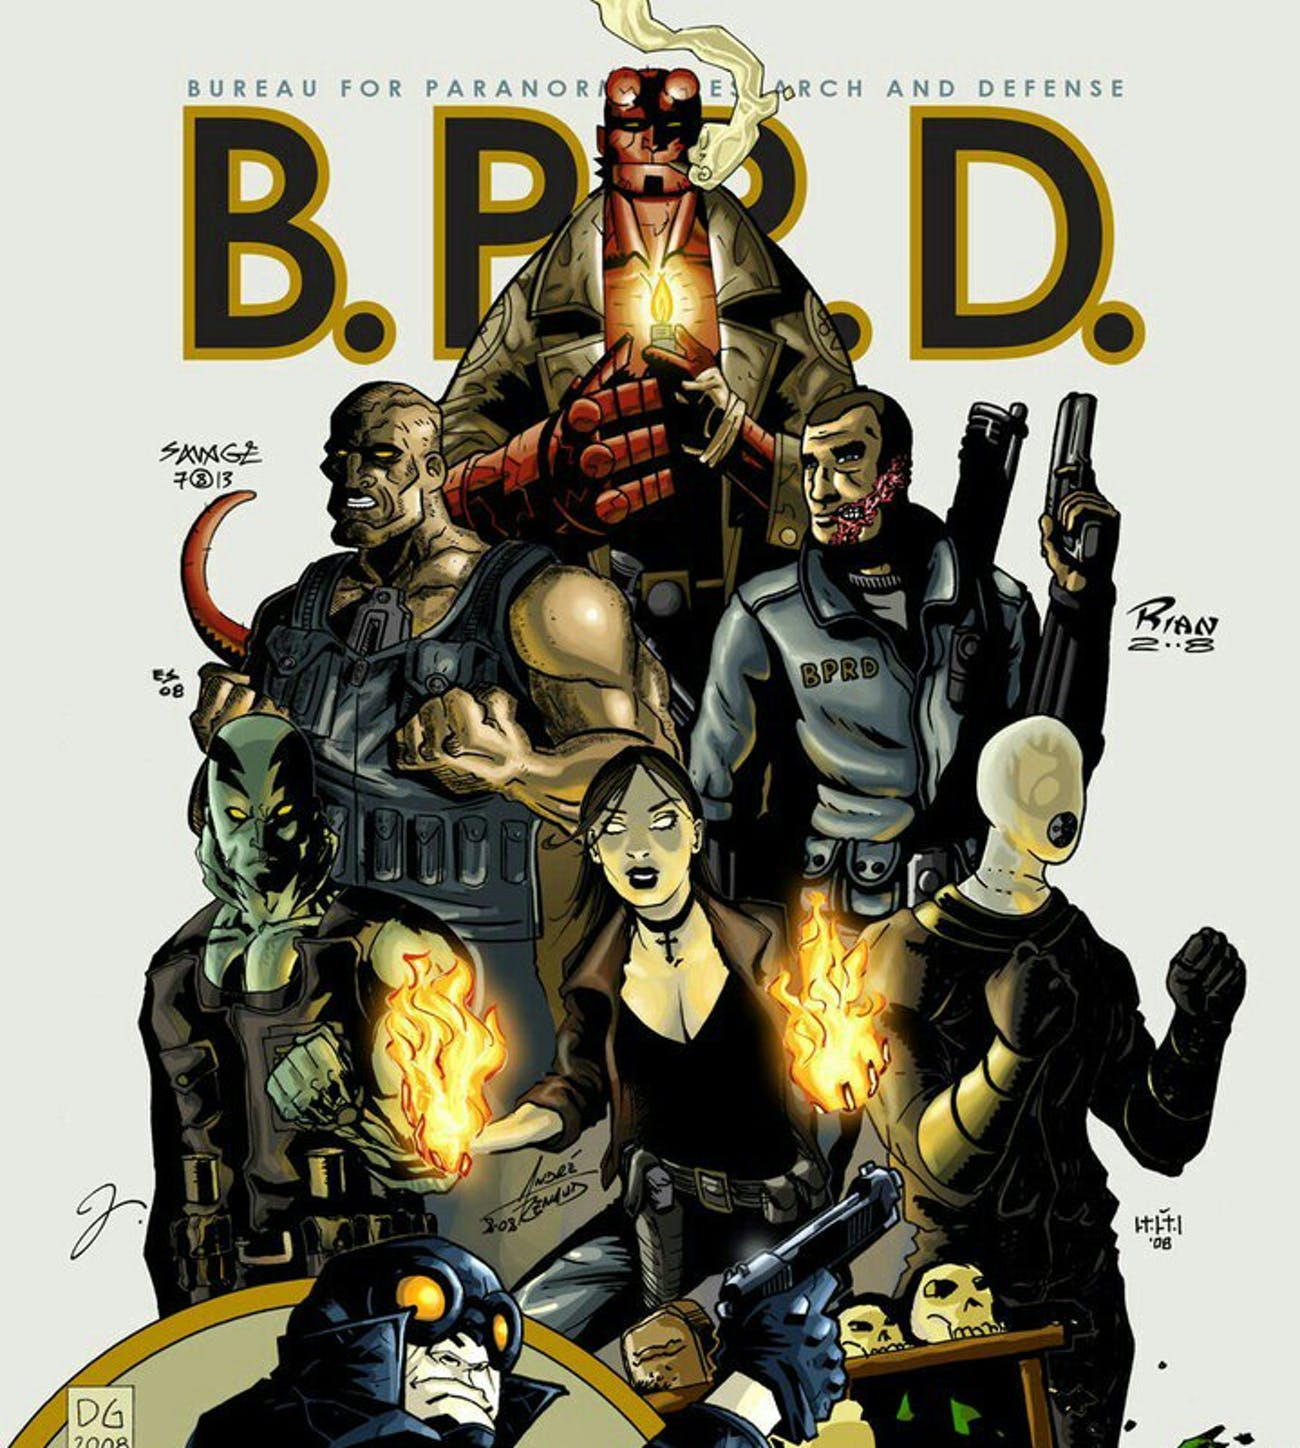 Hellboy (up top), Ben Daimio (center right), along with other members of the BPRD.